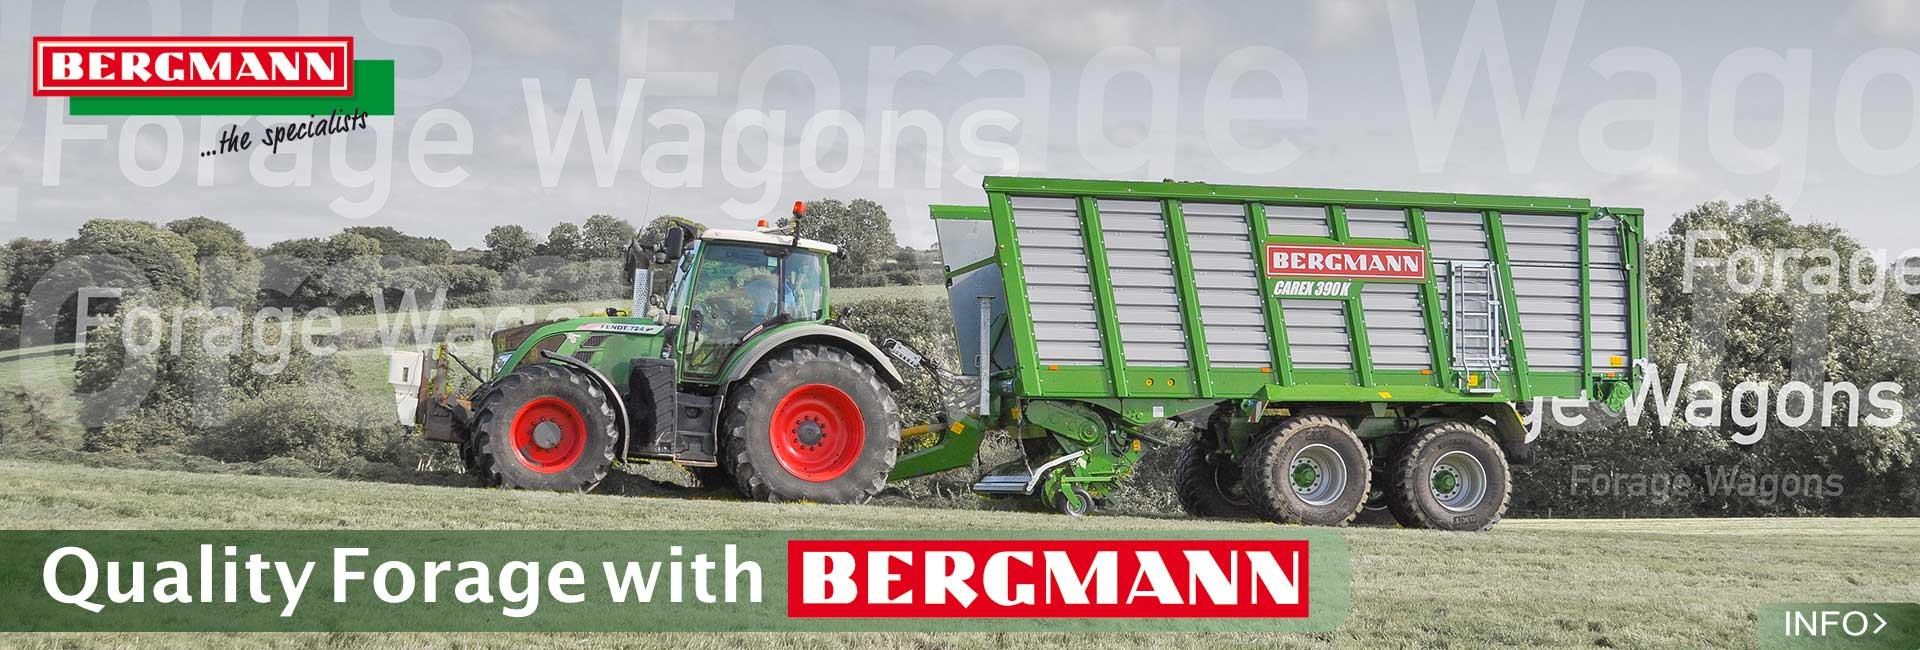 link to bergmann forage wagon info graphic